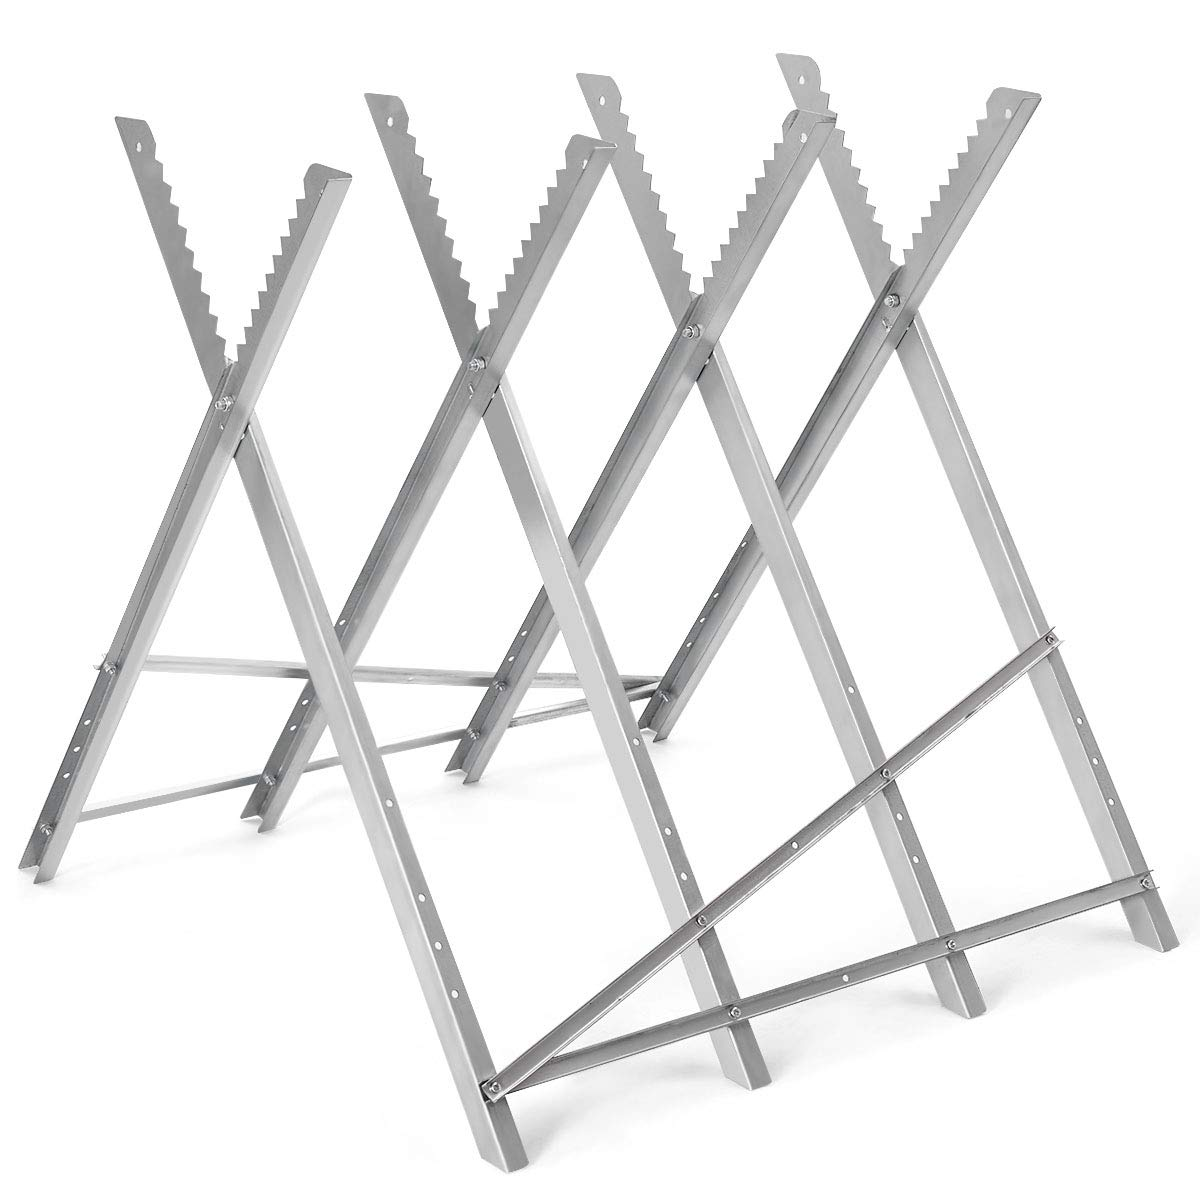 Goplus Portable Sawhorse Heavy Duty Adjustable Steel Work Support Foldable Sawhorse Stand 220 lbs Weight Capacity by Goplus (Image #1)